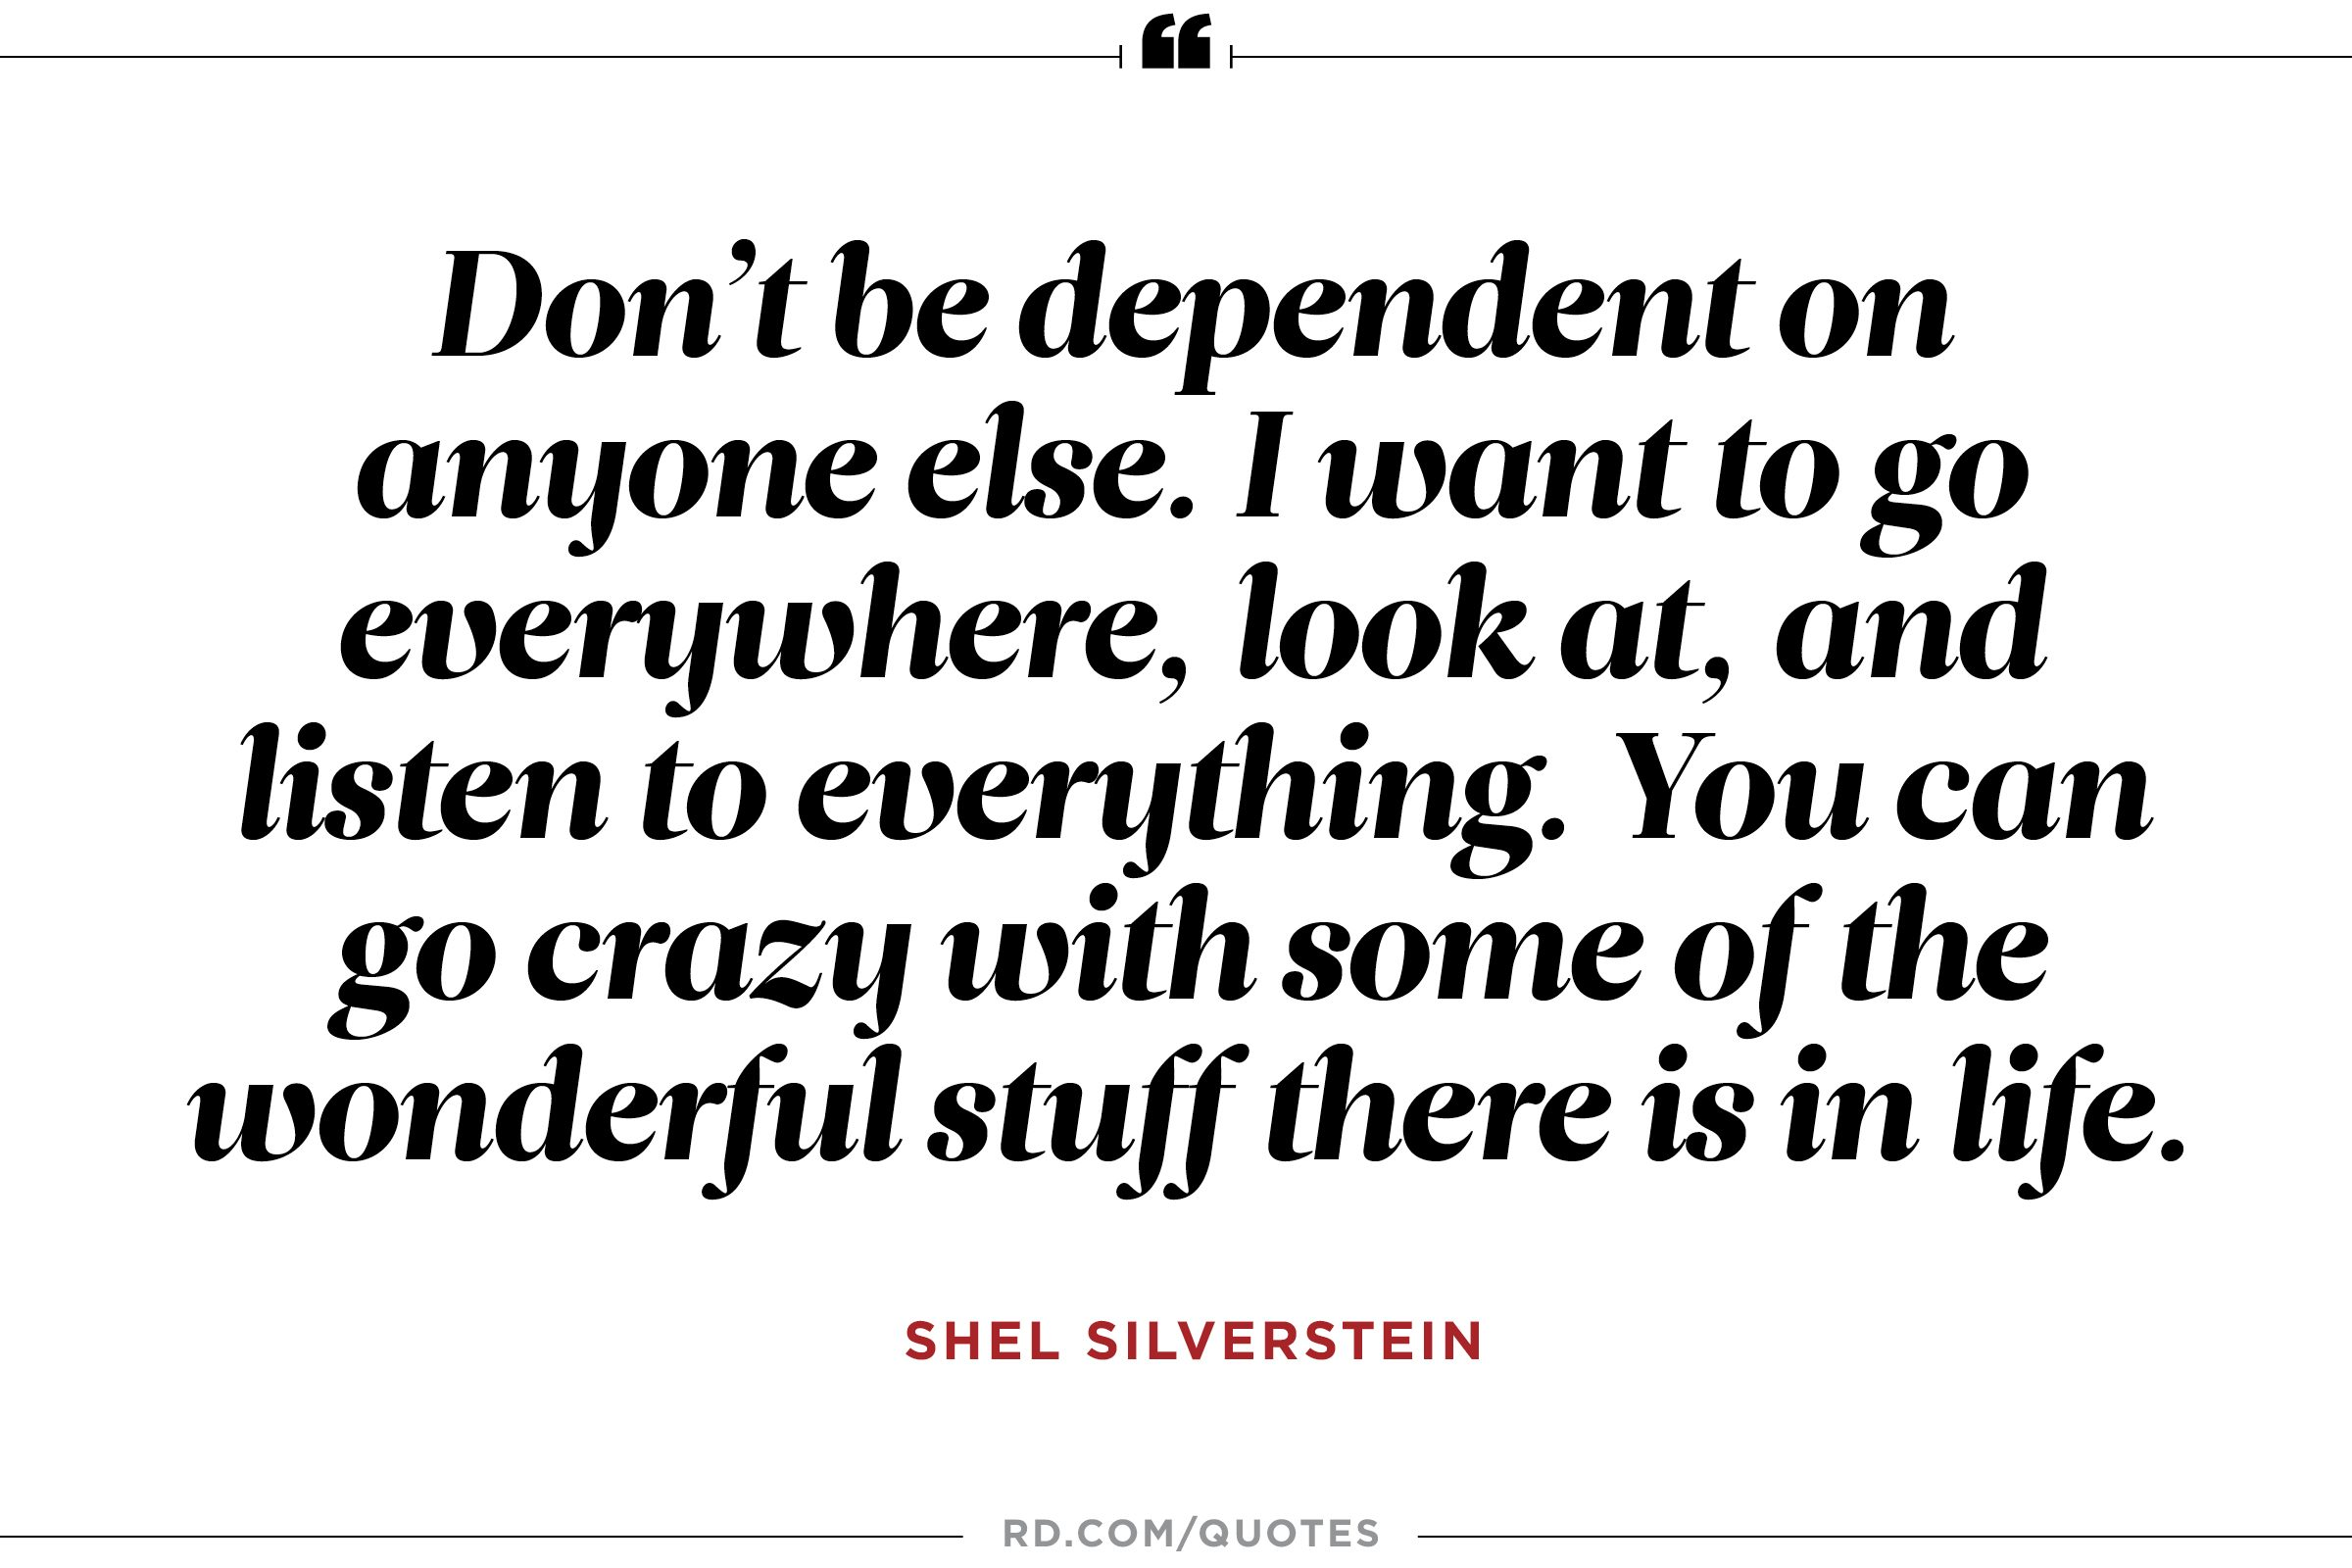 A Quote About Life 11 Motivational Quotes From Shel Silverstein  Reader's Digest